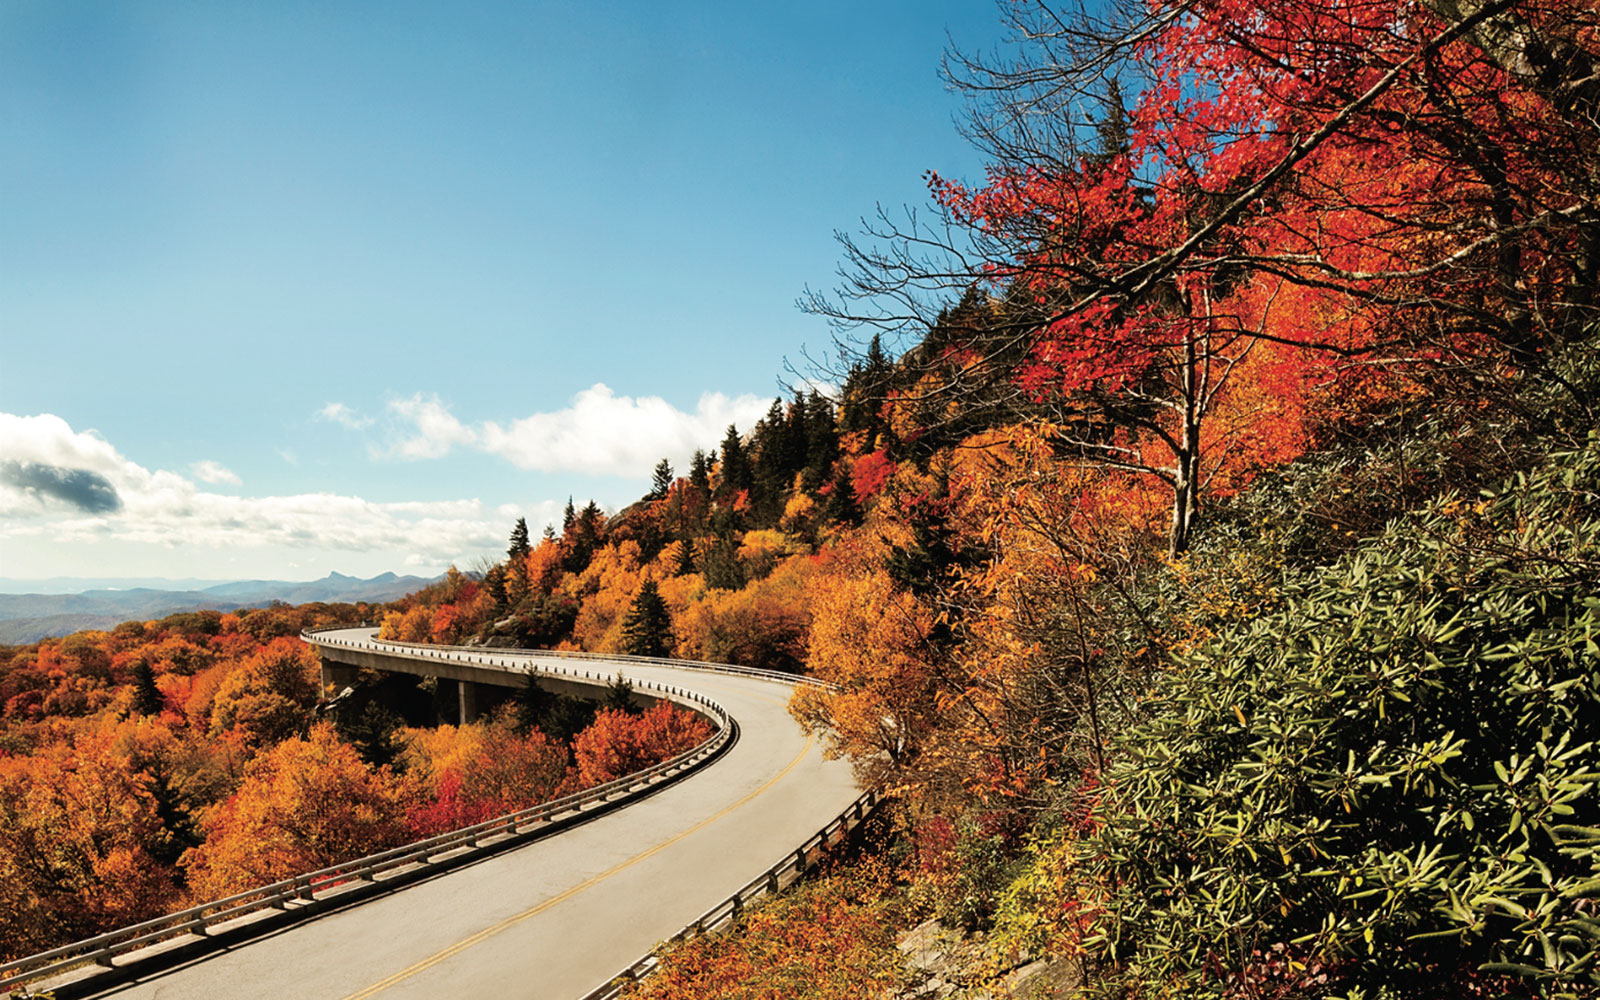 scenic mountain roads in fall along Blue Ridge Parkway, VA & NC